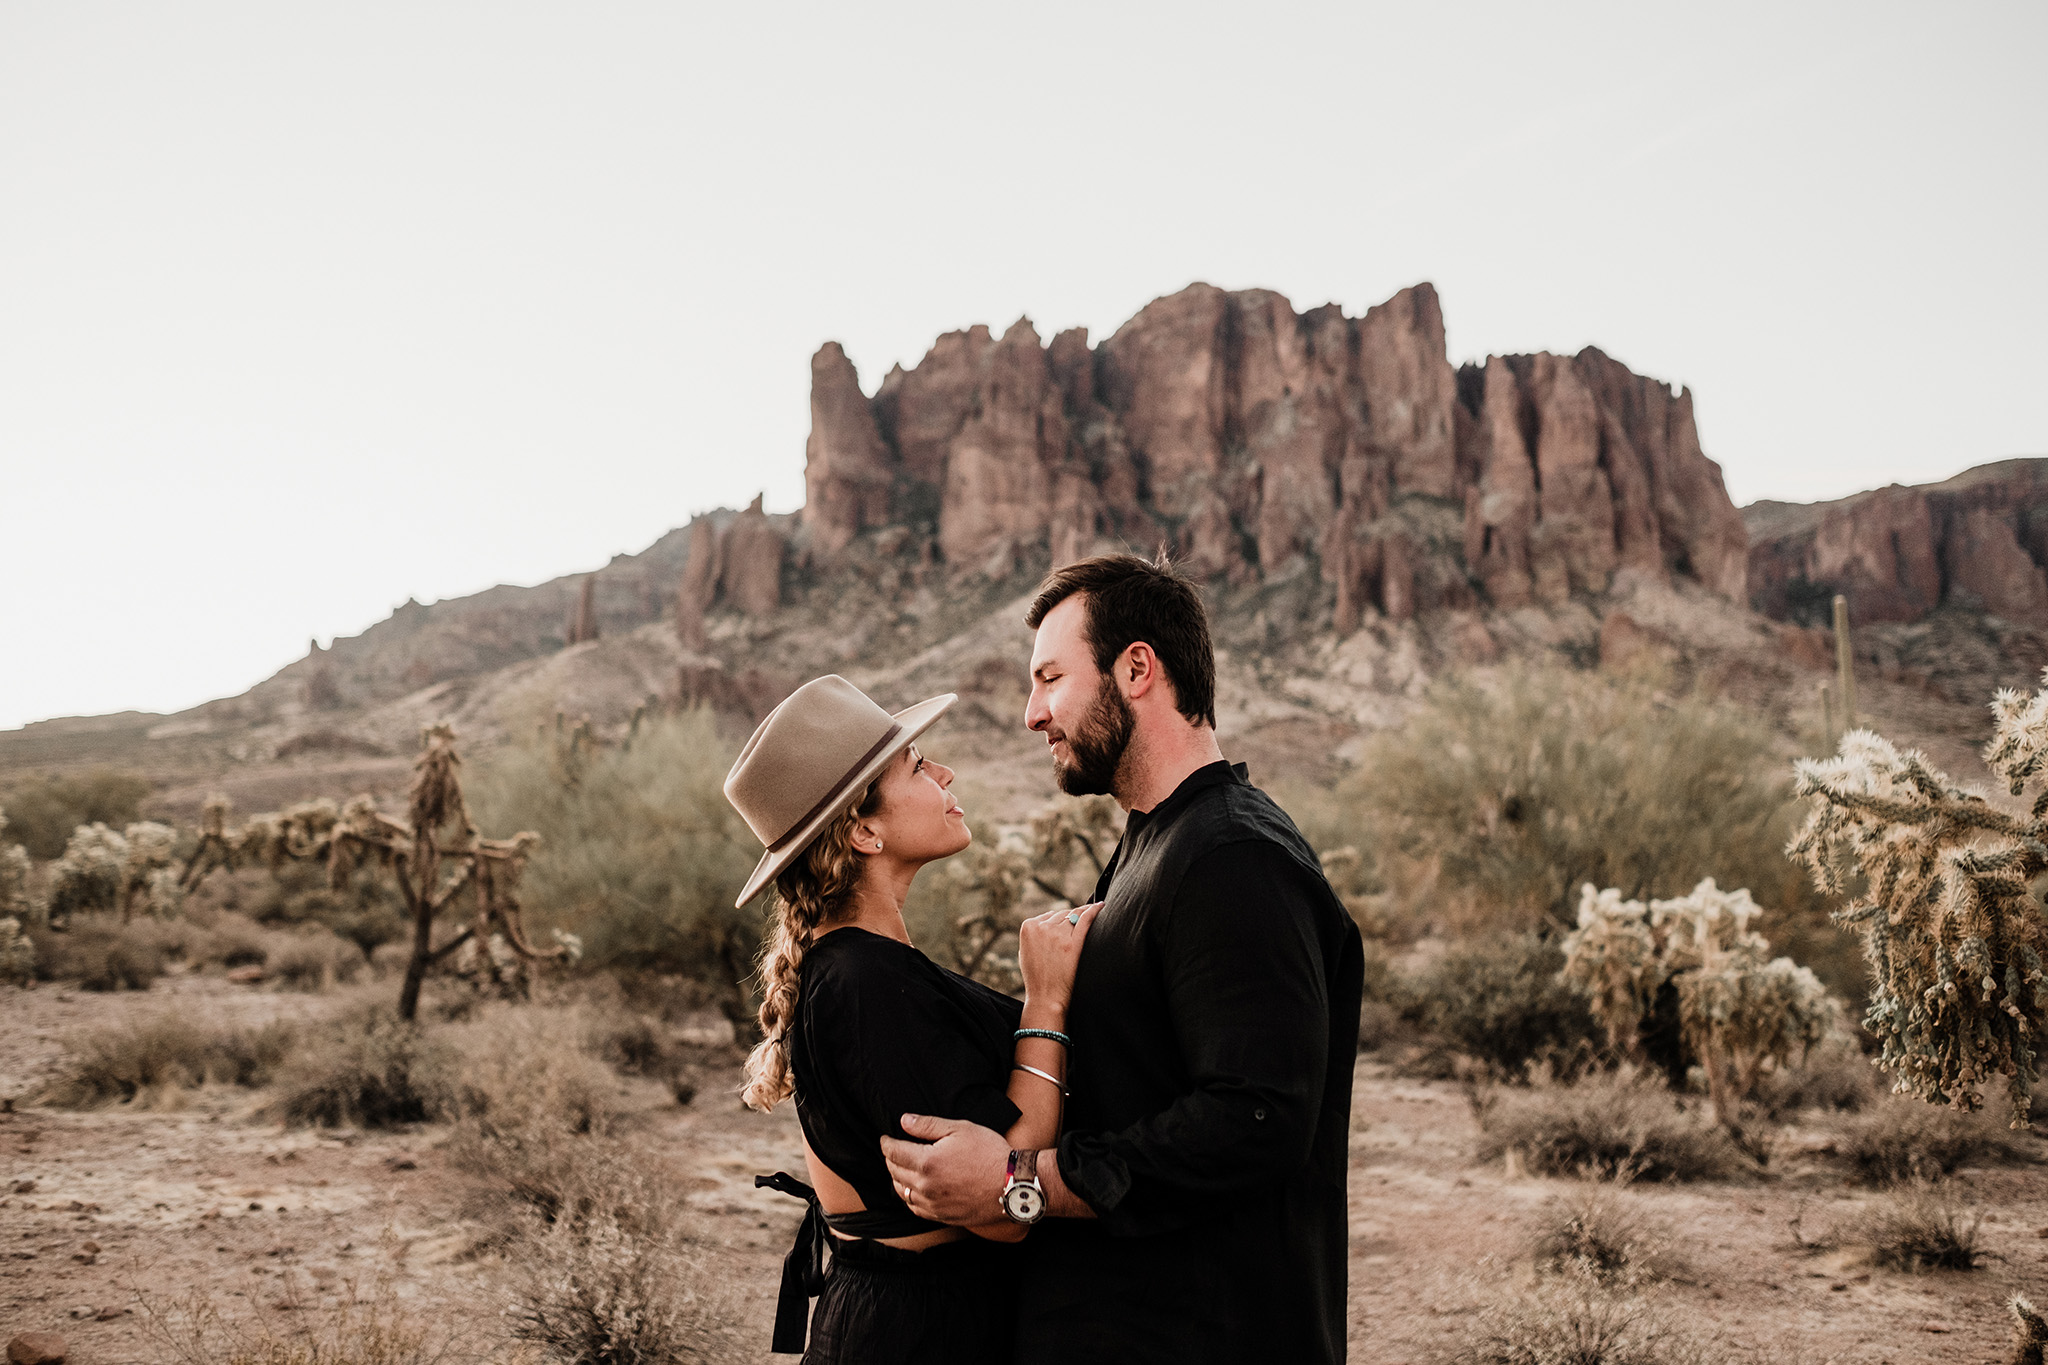 Arizona-Desert-Intimate-Wedding-Photographer-Lost-Dutchman-State-Park (2).jpg